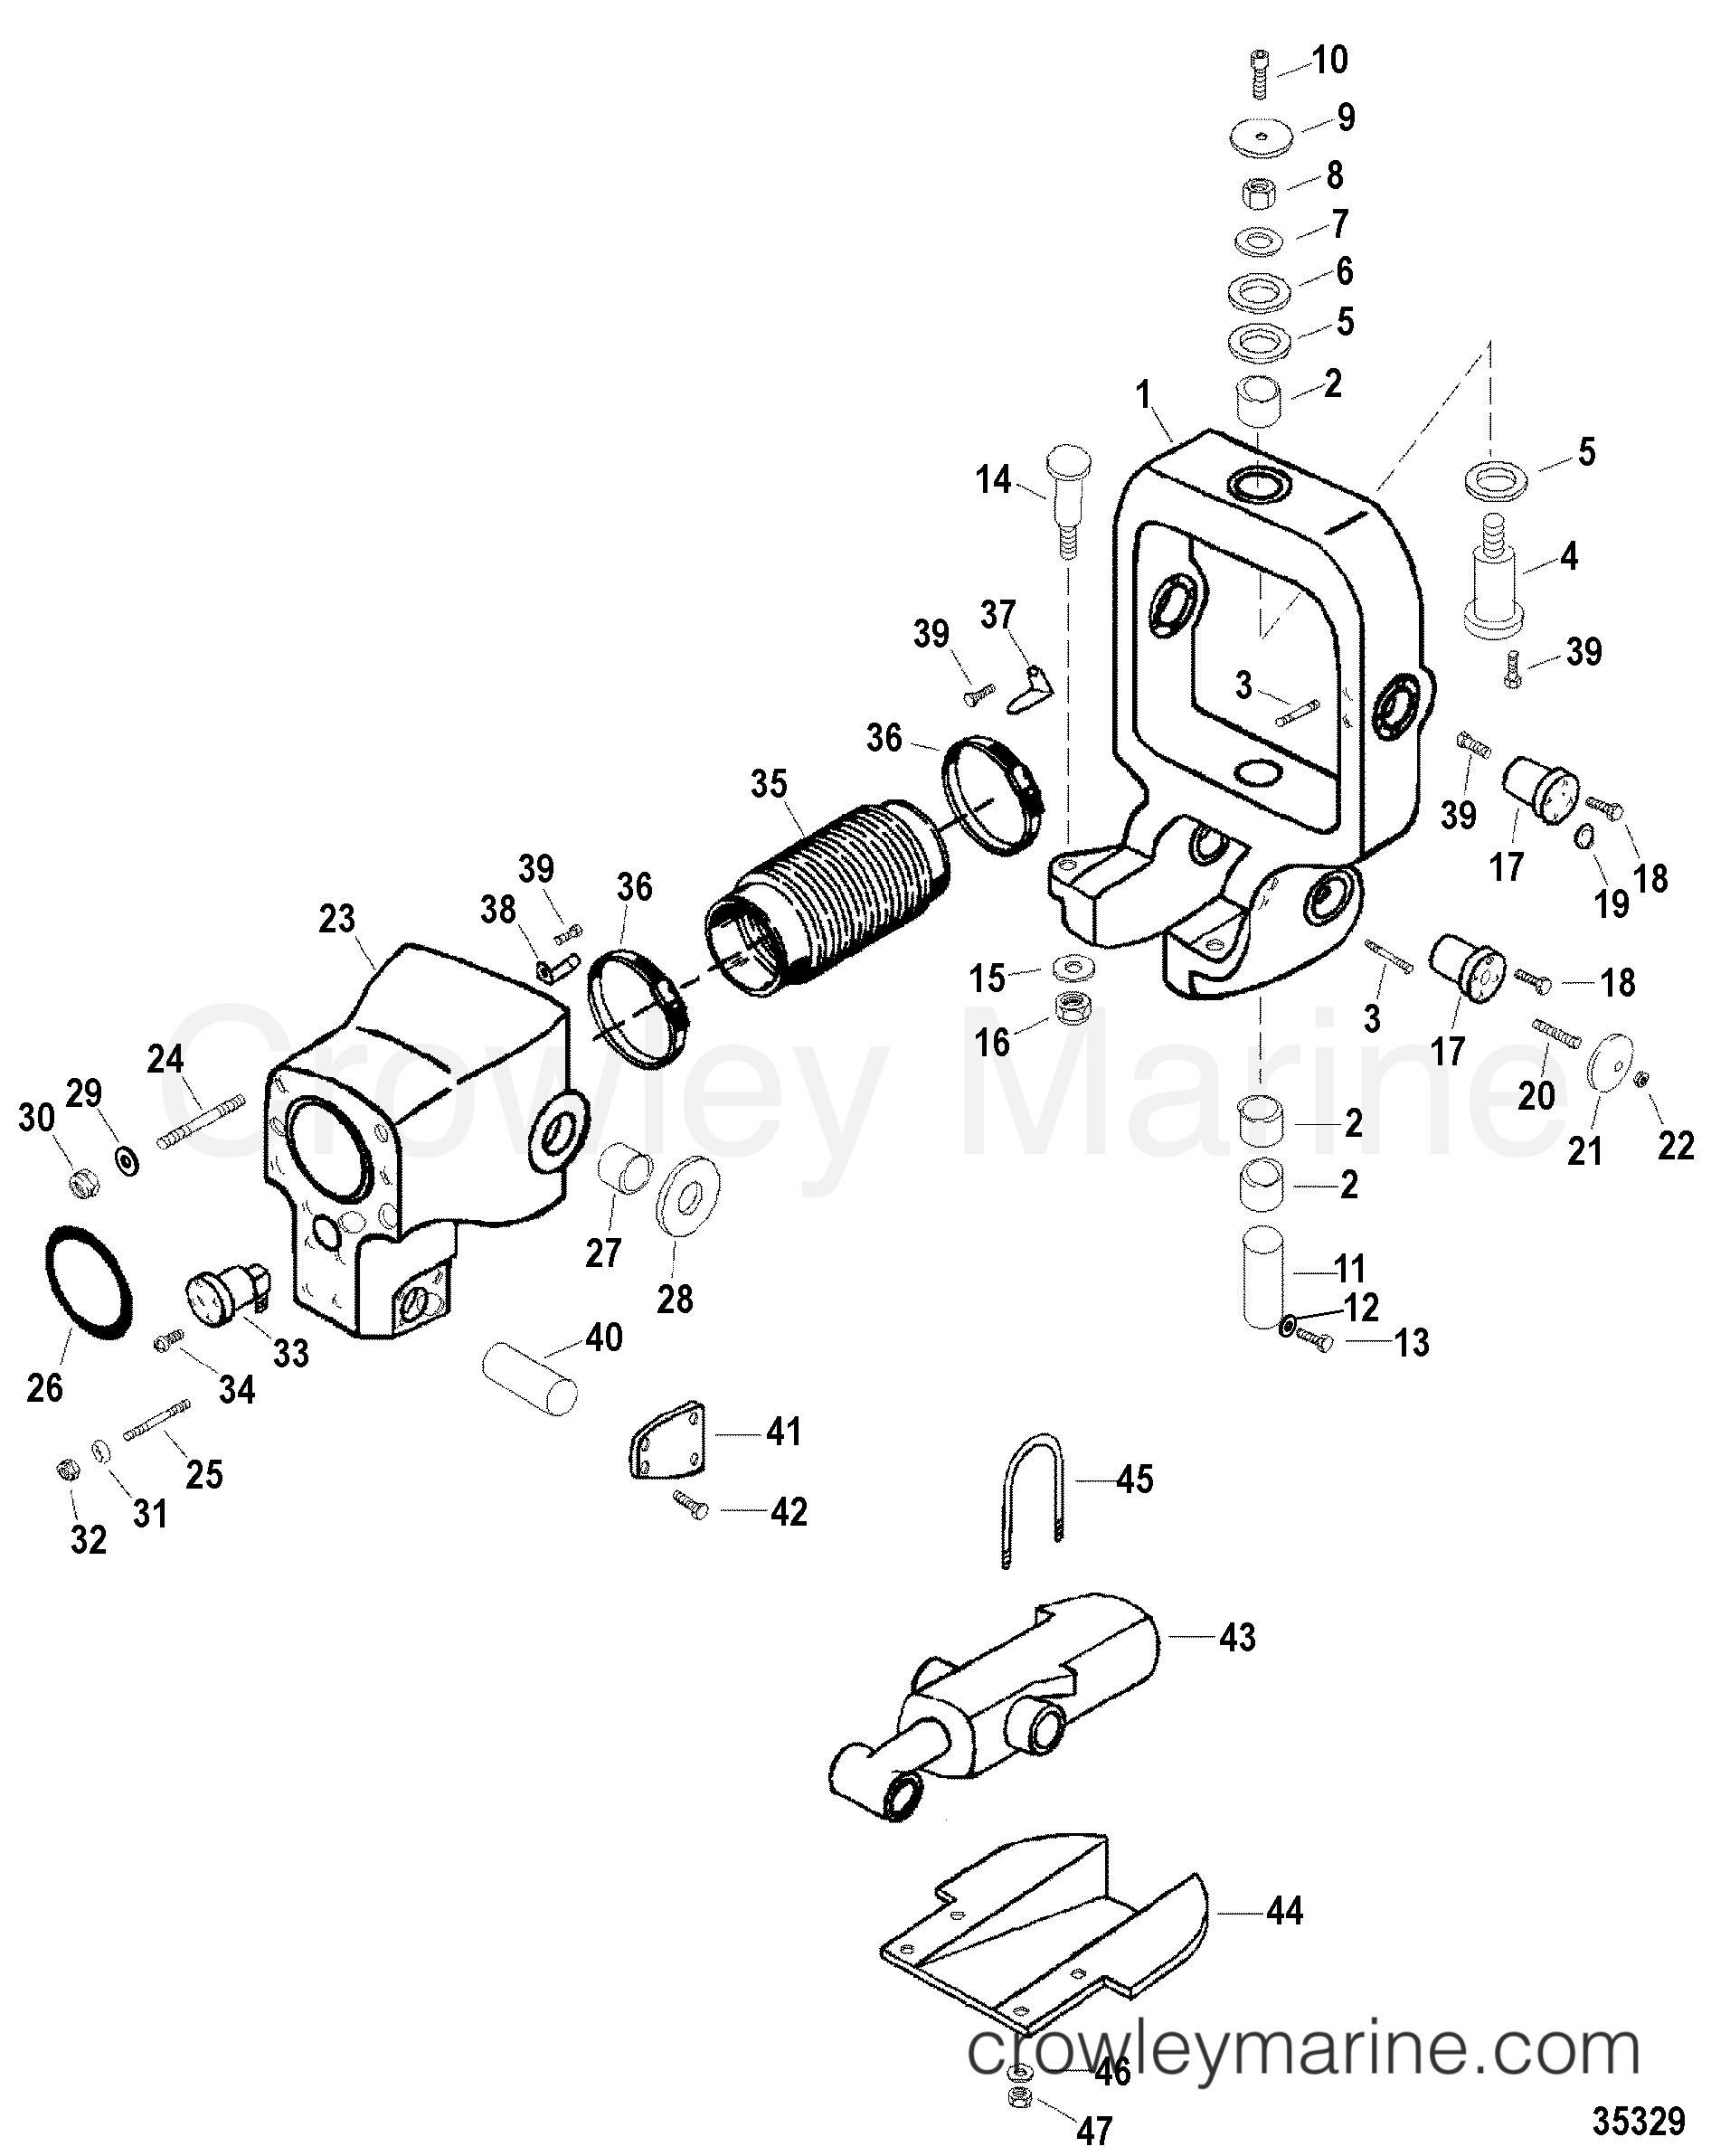 Serial Range Mercruiser Race Sterndrive SSM SIX - ALL & Up [USA] - GIMBAL RING AND BELL HOUSING ASSEMBLY(WITHOUT TRIM SENSOR) section